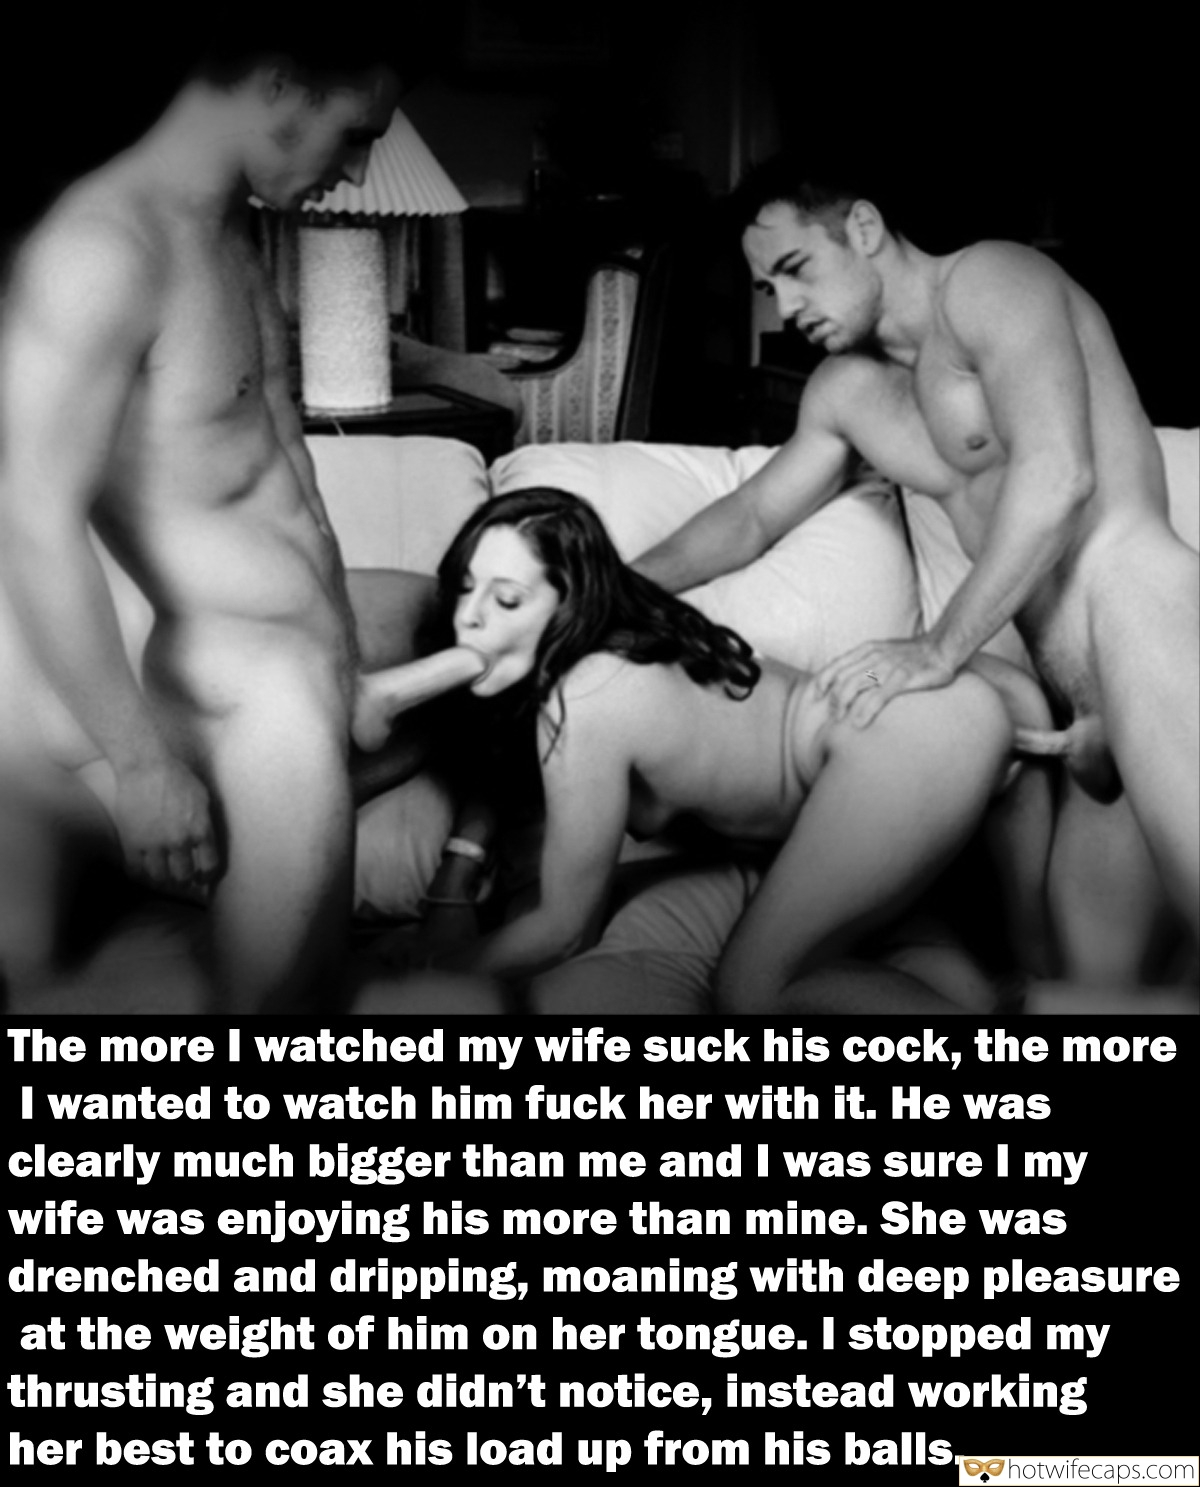 Wife Sharing Threesome Bigger Cock hotwife caption: The more I watched my wife suck his cock, the more I wanted to watch him fuck her with it. He was clearly much bigger than me and I was sure I my wife was enjoying his more than mine....